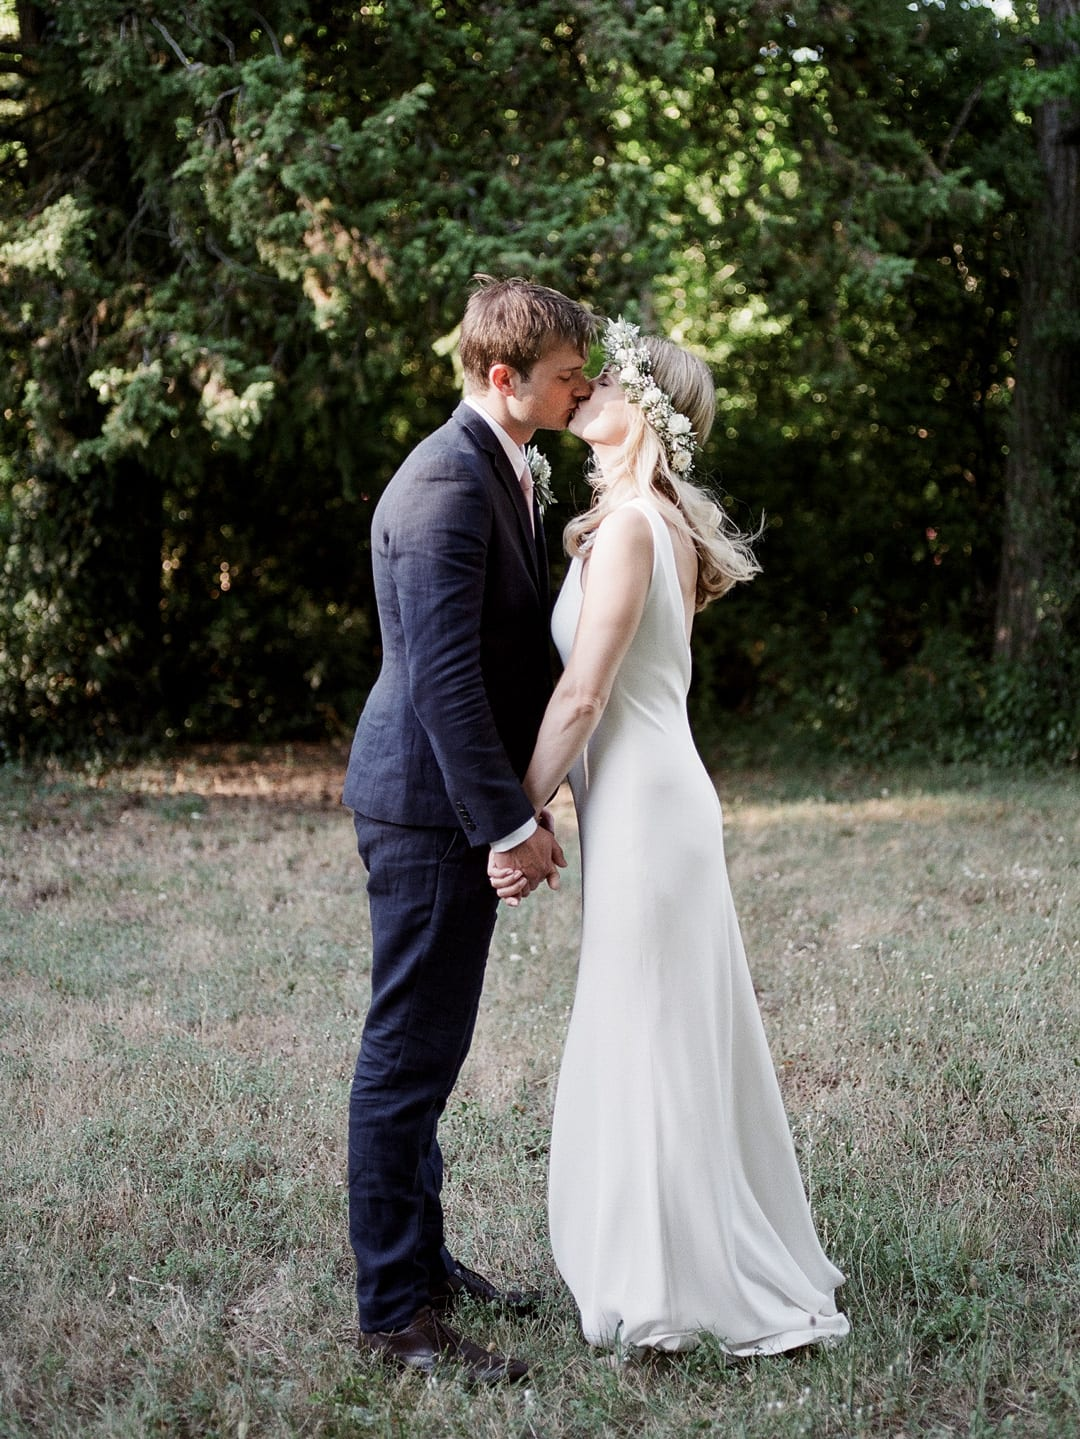 Stealing a kiss on our wedding day